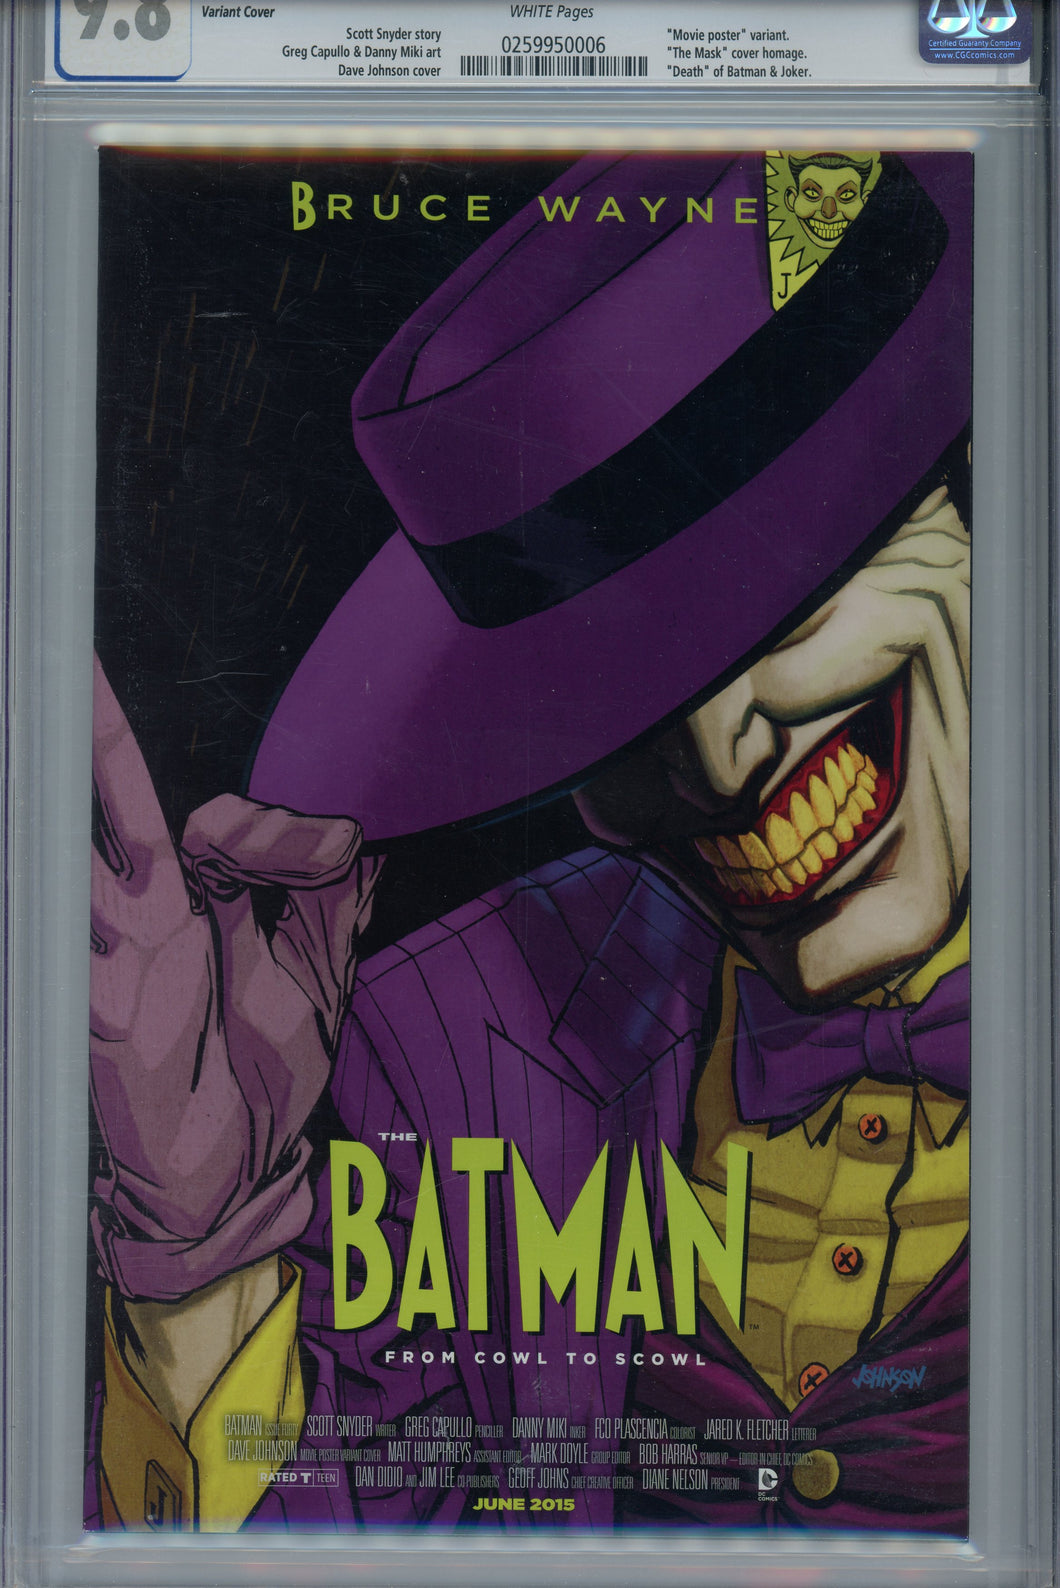 Batman #40 New 52 CGC 9.8 Movie Poster Variant